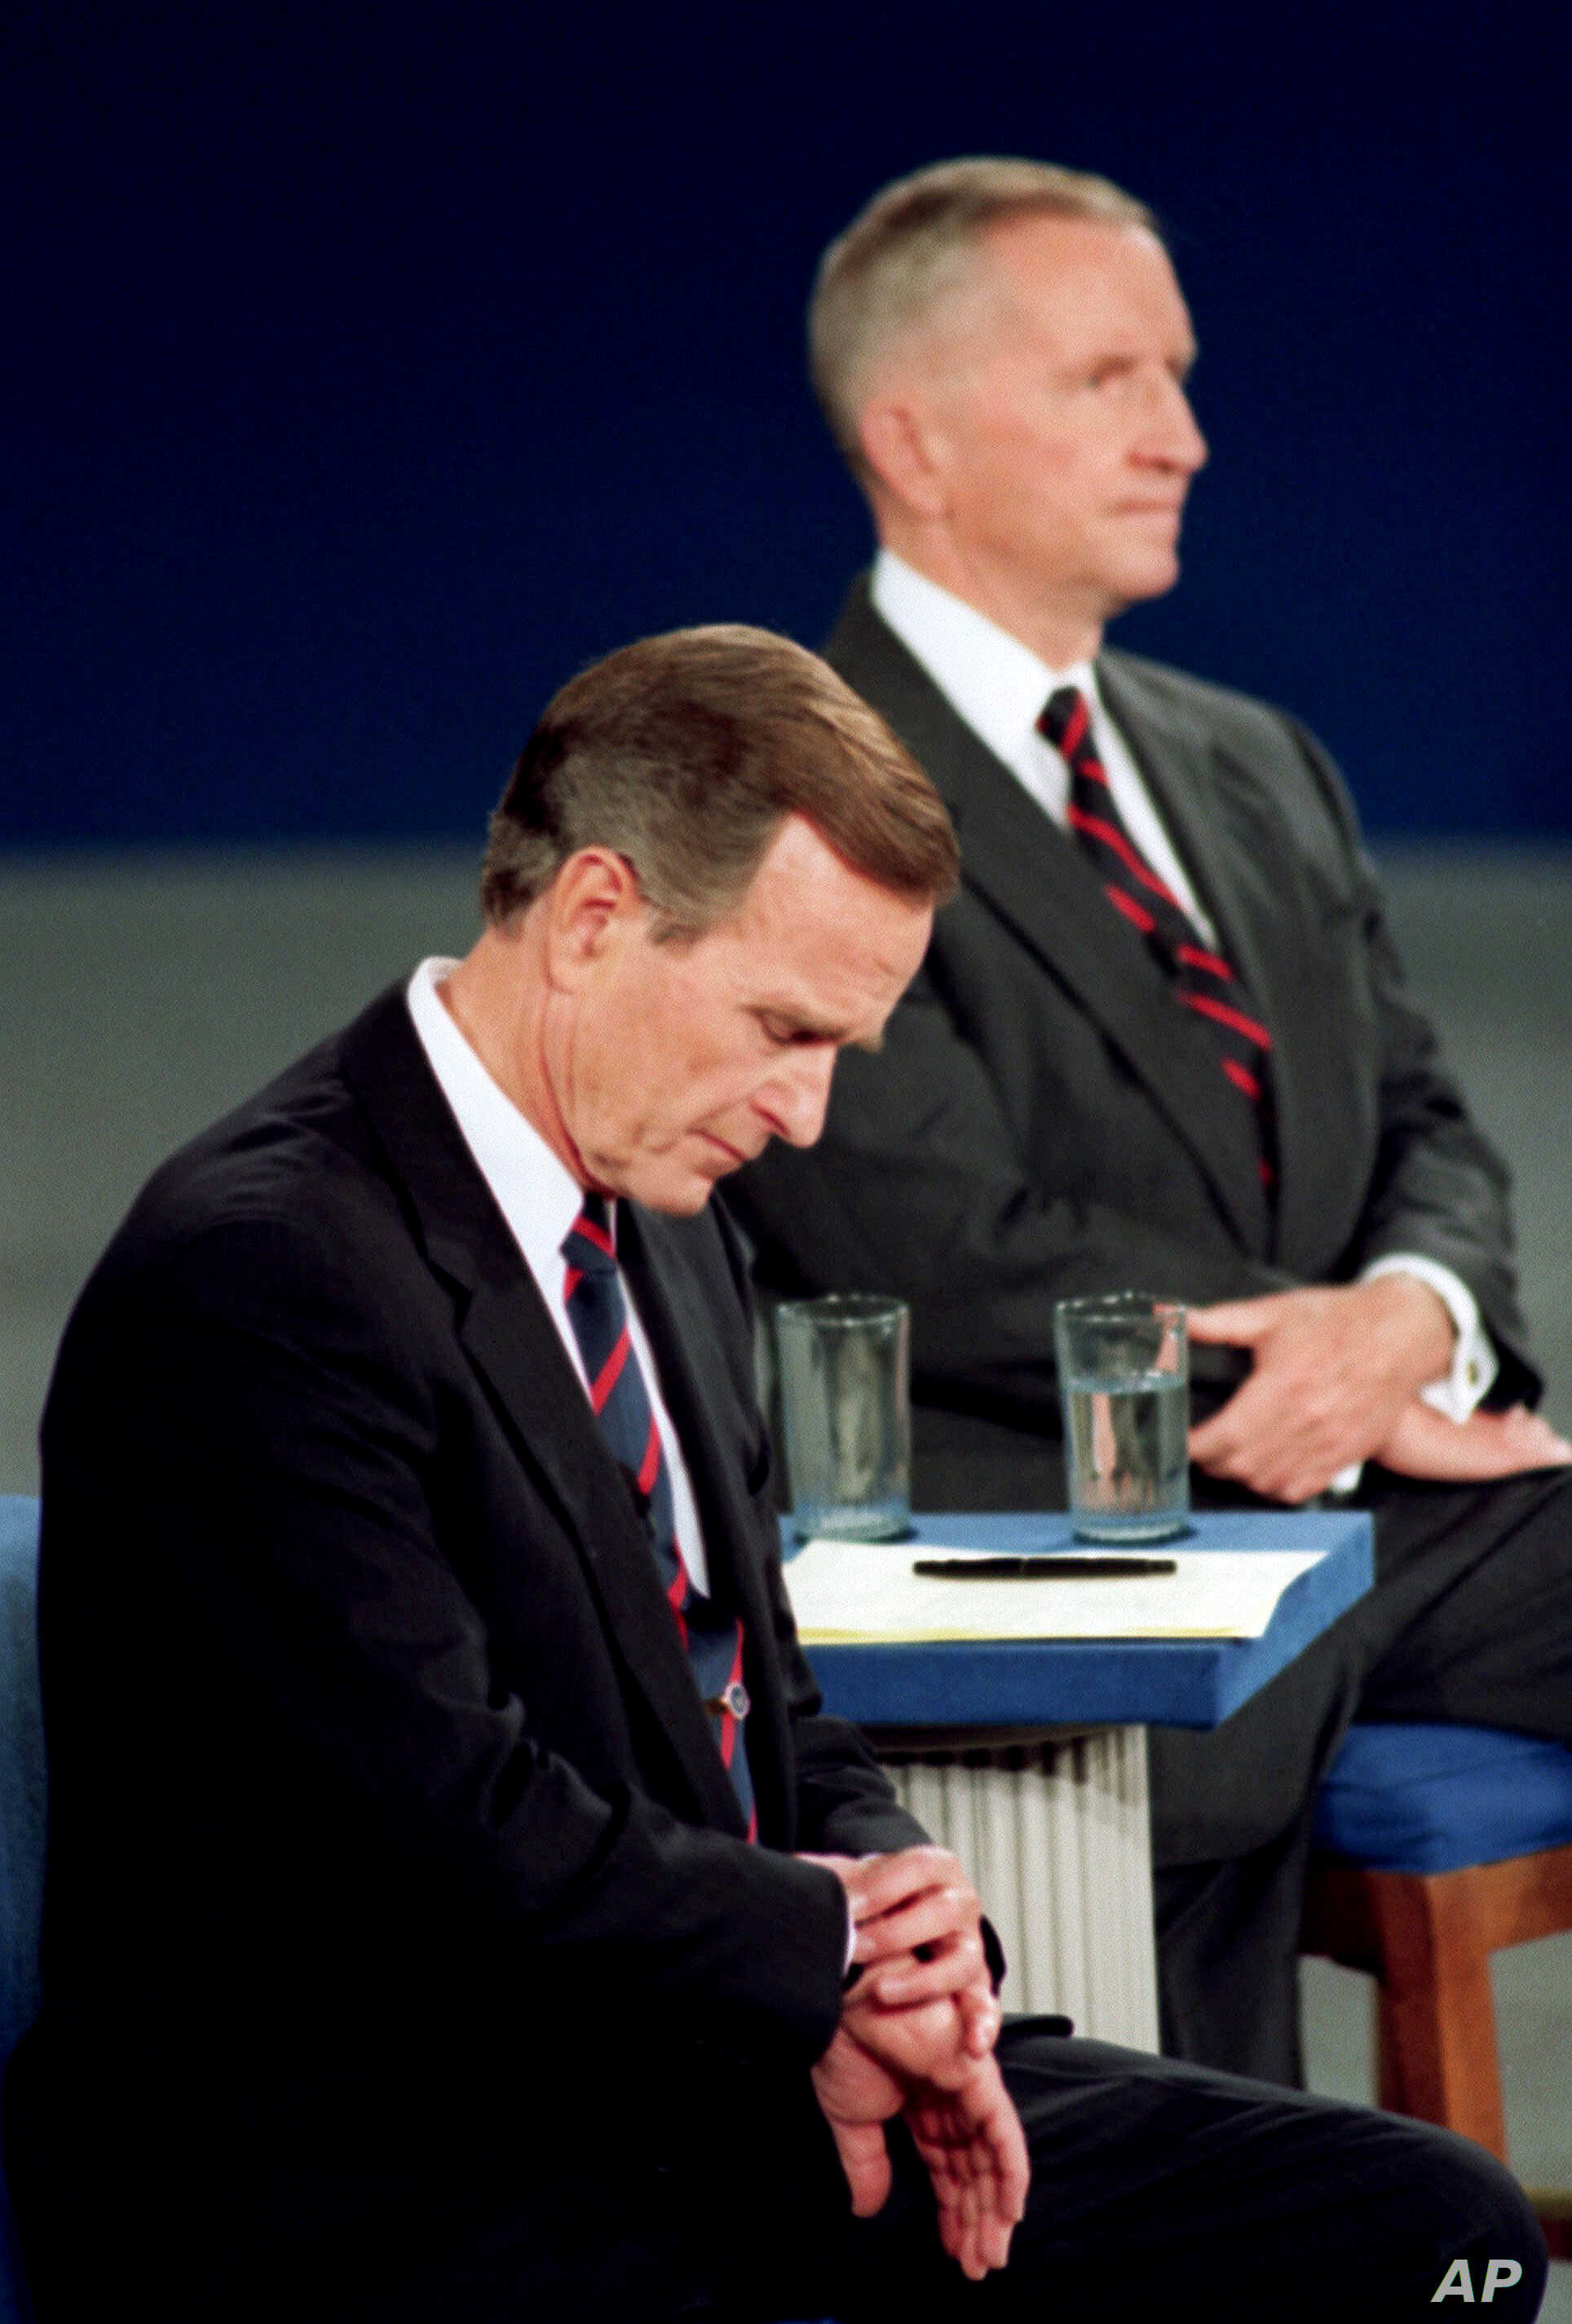 FILE - President George H.W. Bush checks his watch during the 1992 presidential campaign debate with Independent Ross Perot and Democrat Bill Clinton, not shown. Presidential candidates and their running mates often find that campaign debates turn o...